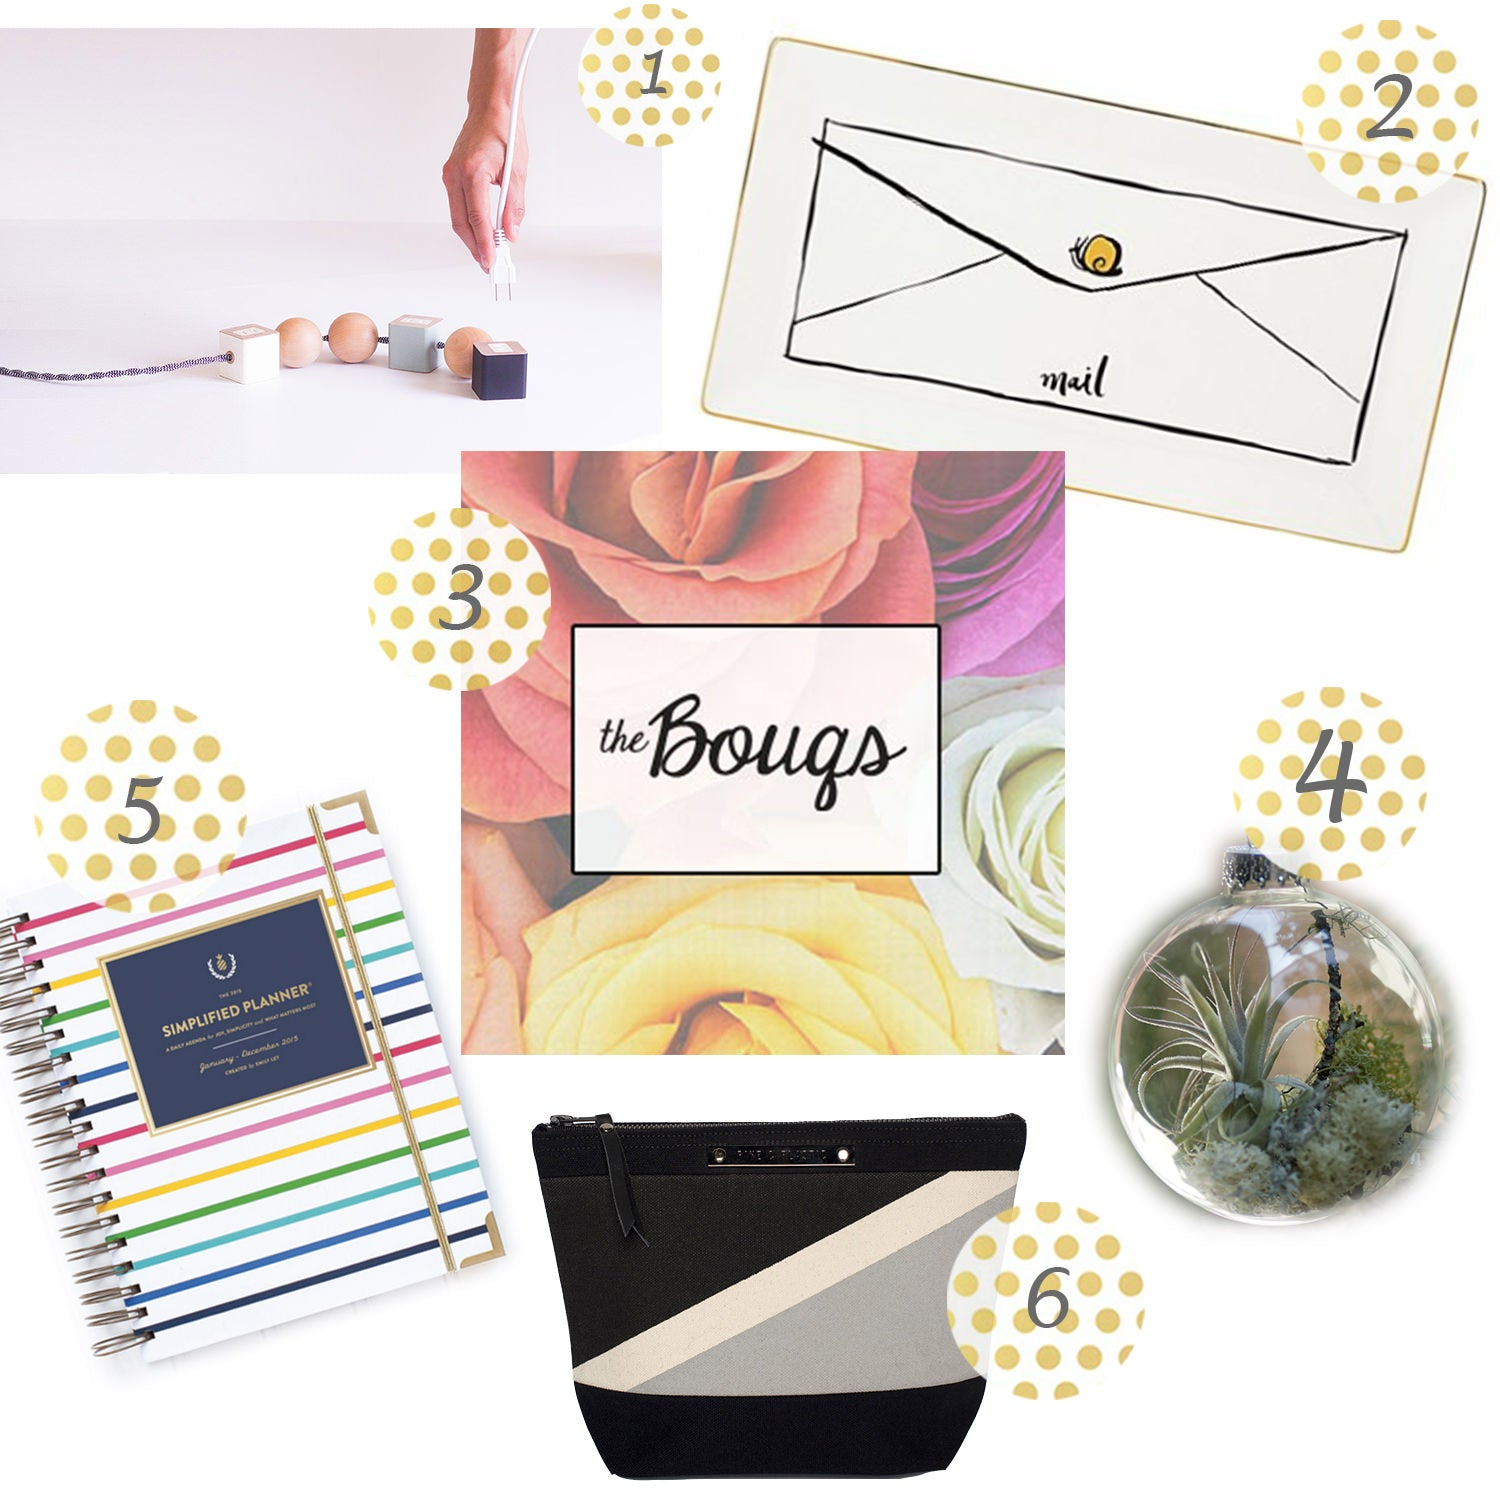 Outlet Block Cords from Okum, Kate Spade Mail Tray, Monthly Flower Shipment, Forest Floor Ornament, 2015 Daily Planner, Passenger Pouch, Pine & Plastic